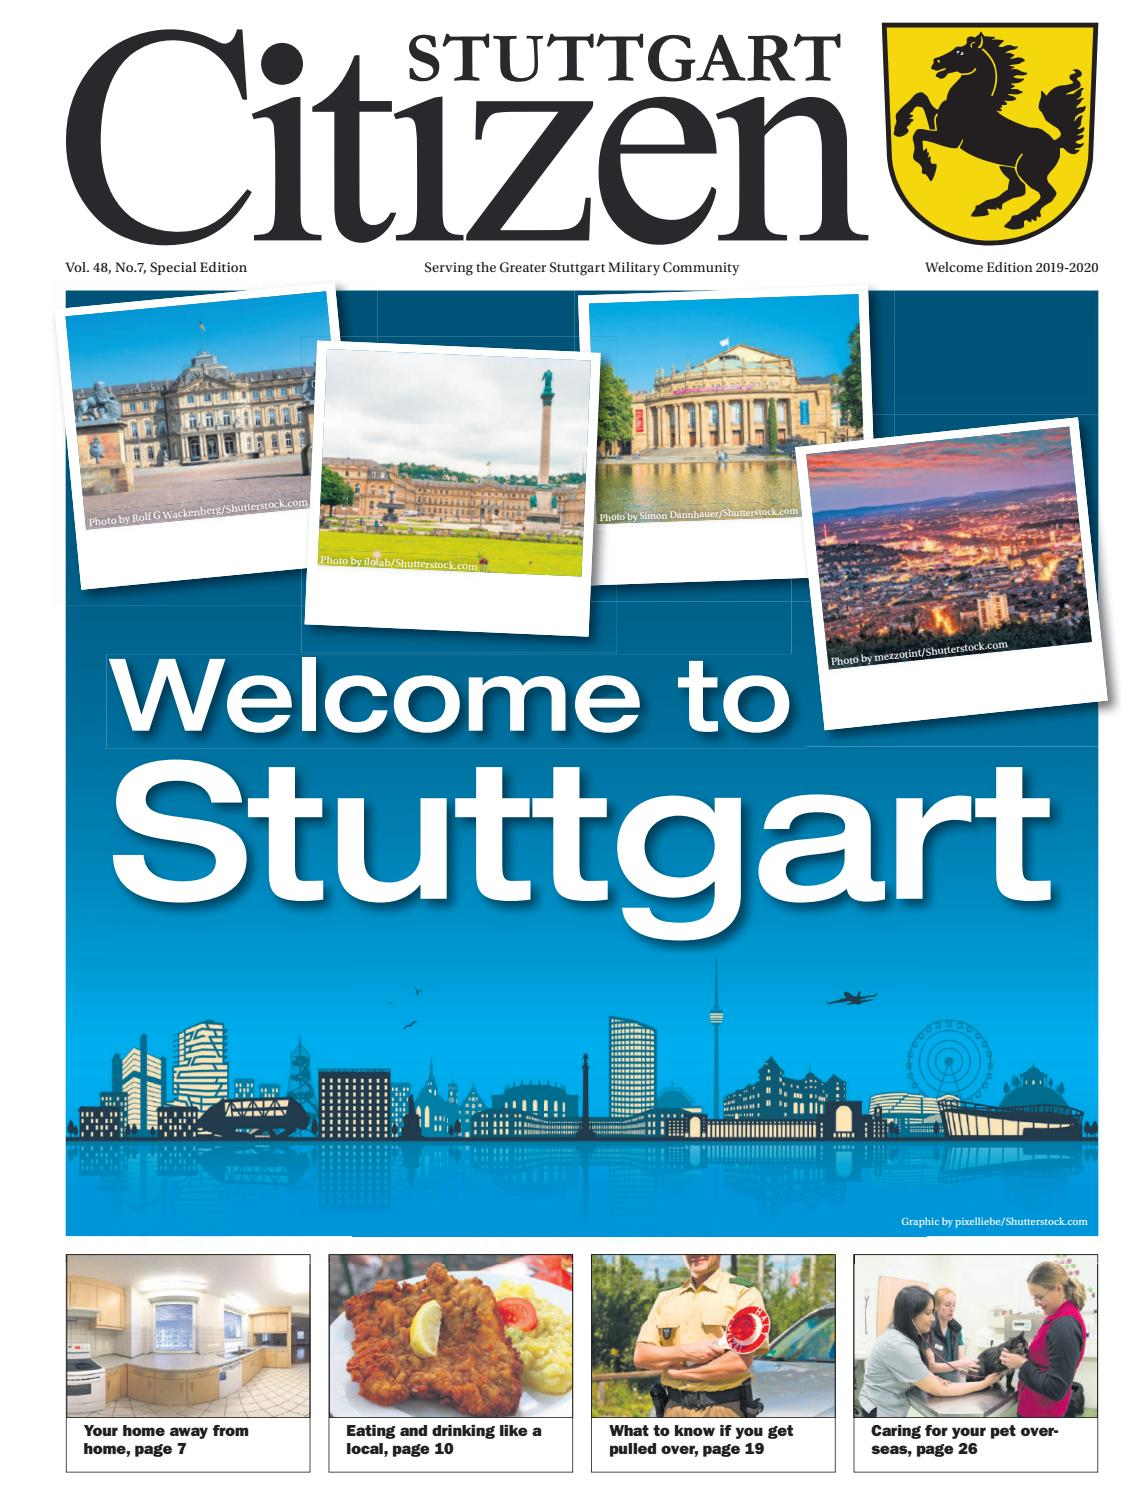 The Citizen Welcome To Stuttgart Edition 2019 2020 By Advantipro Gmbh Issuu - Blauer Engel In Ludwigsburg